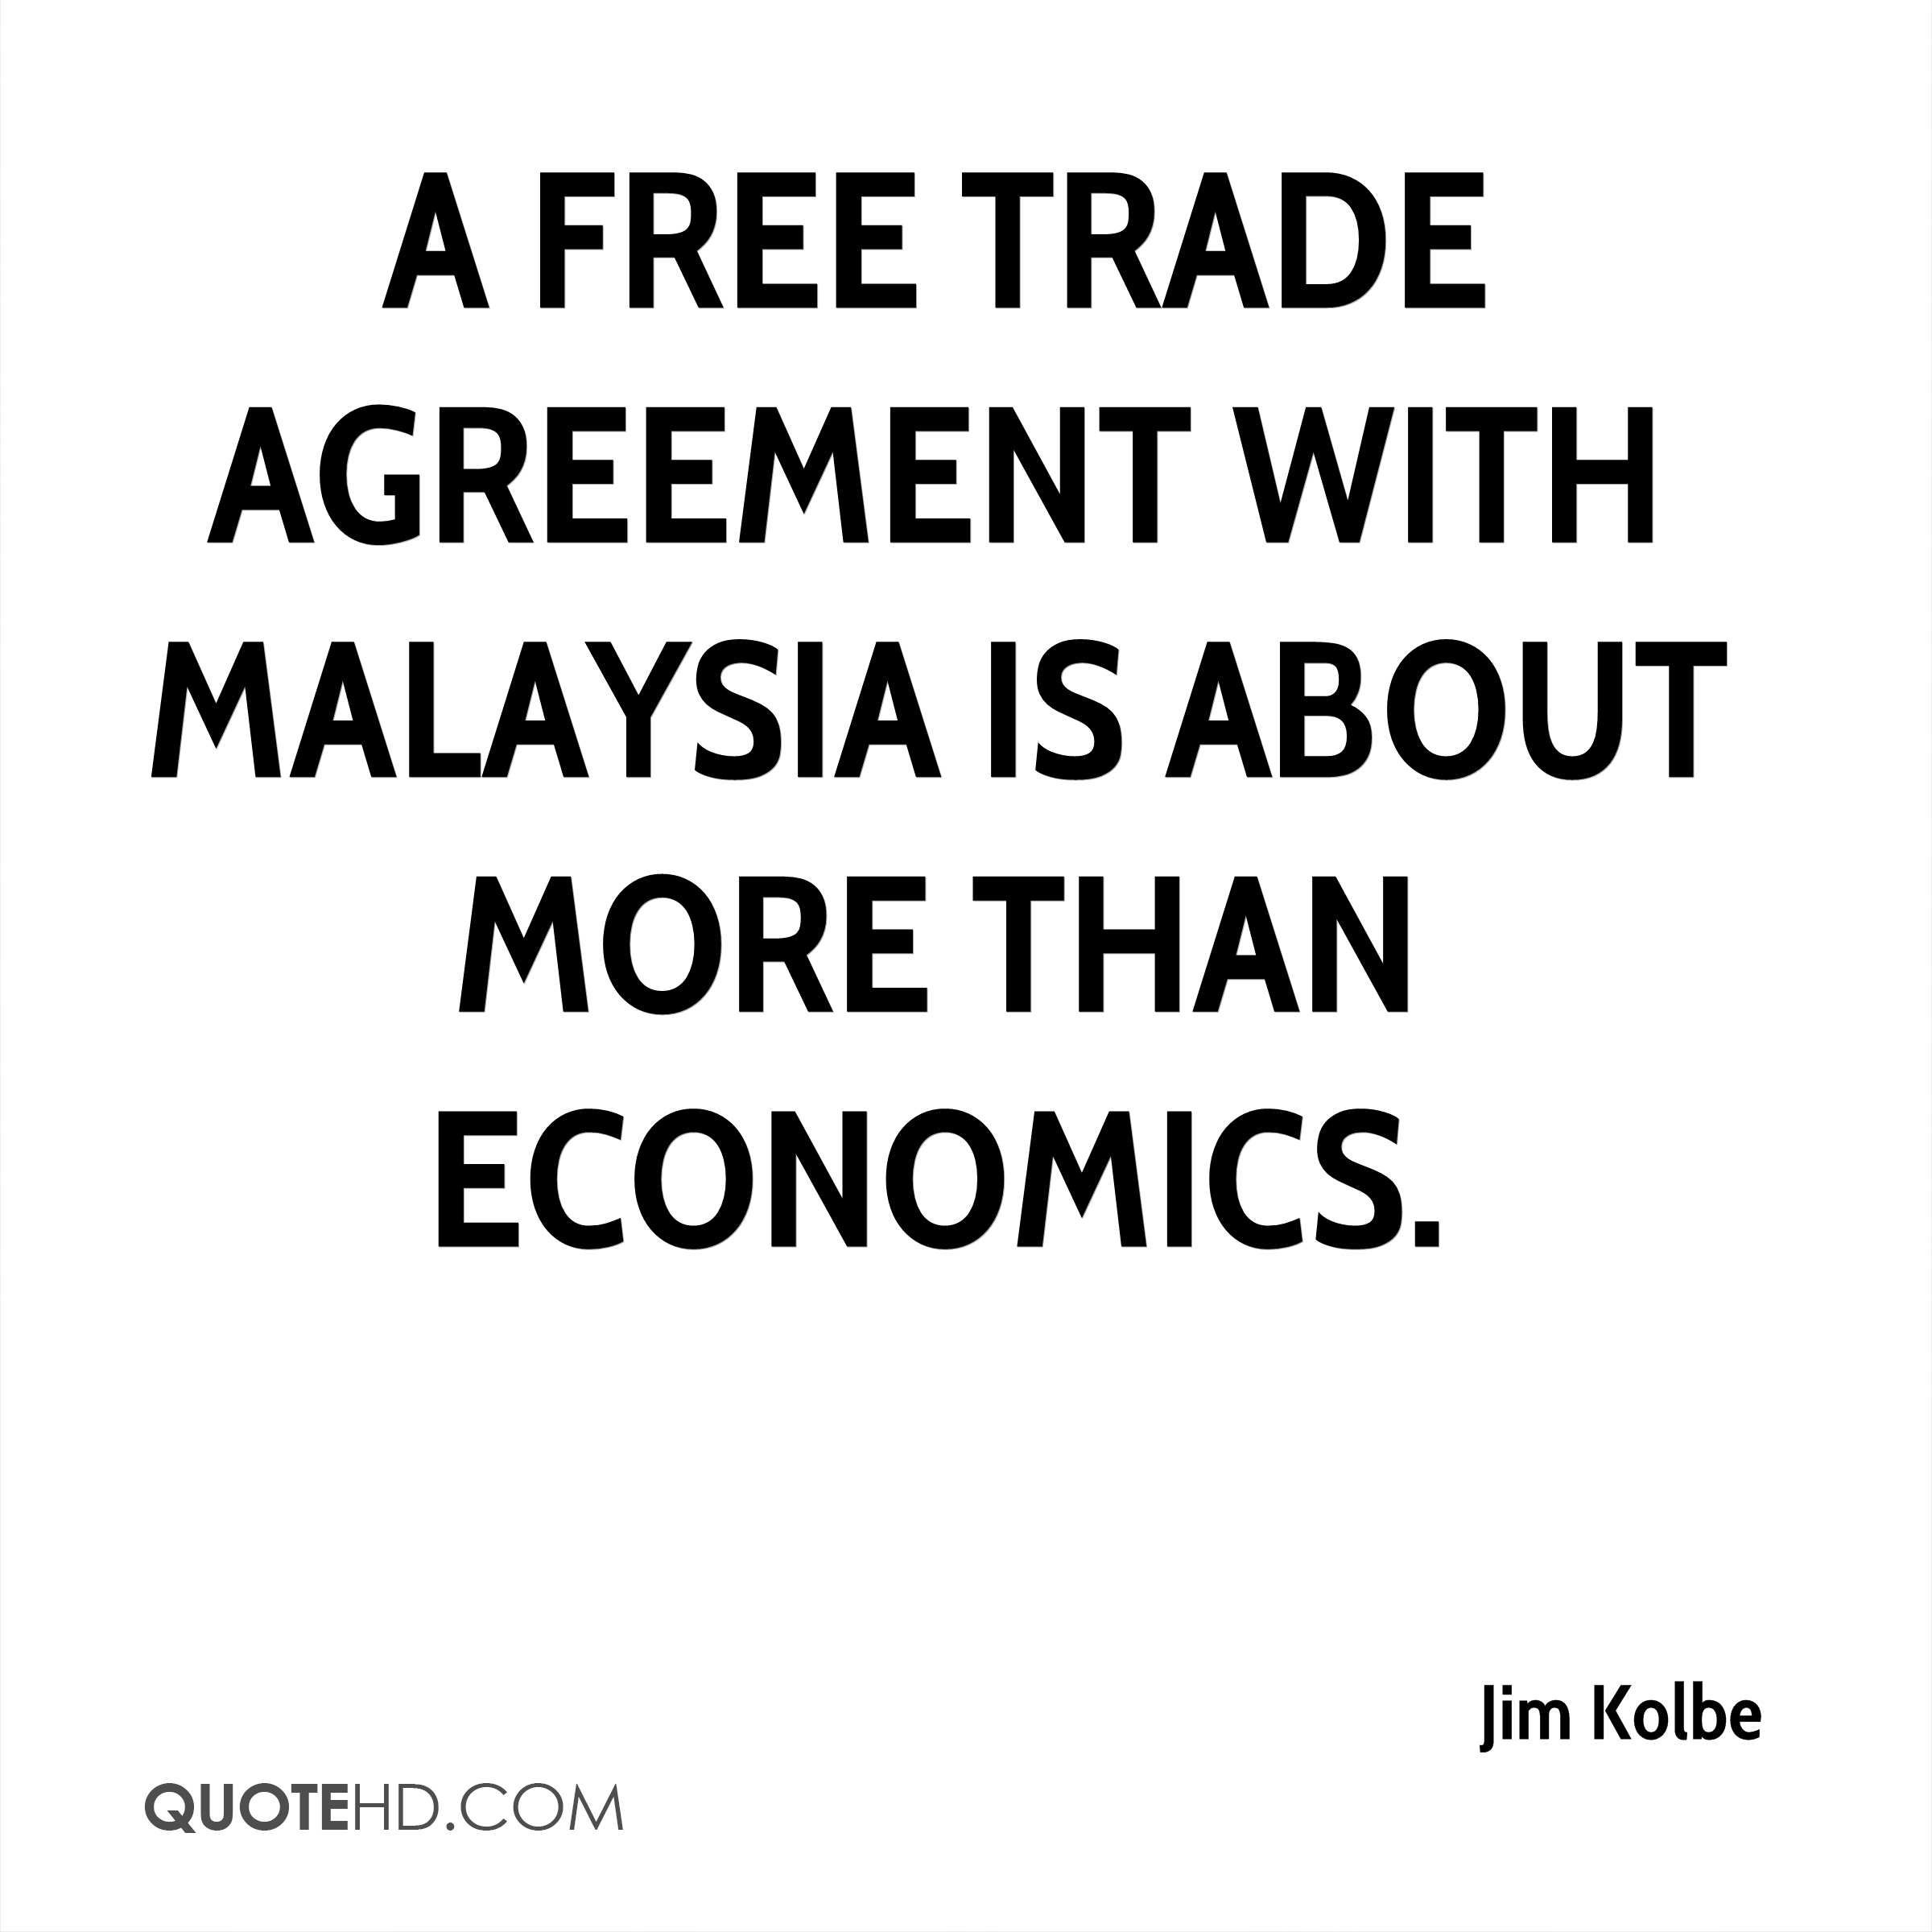 A free trade agreement with Malaysia is about more than economics.